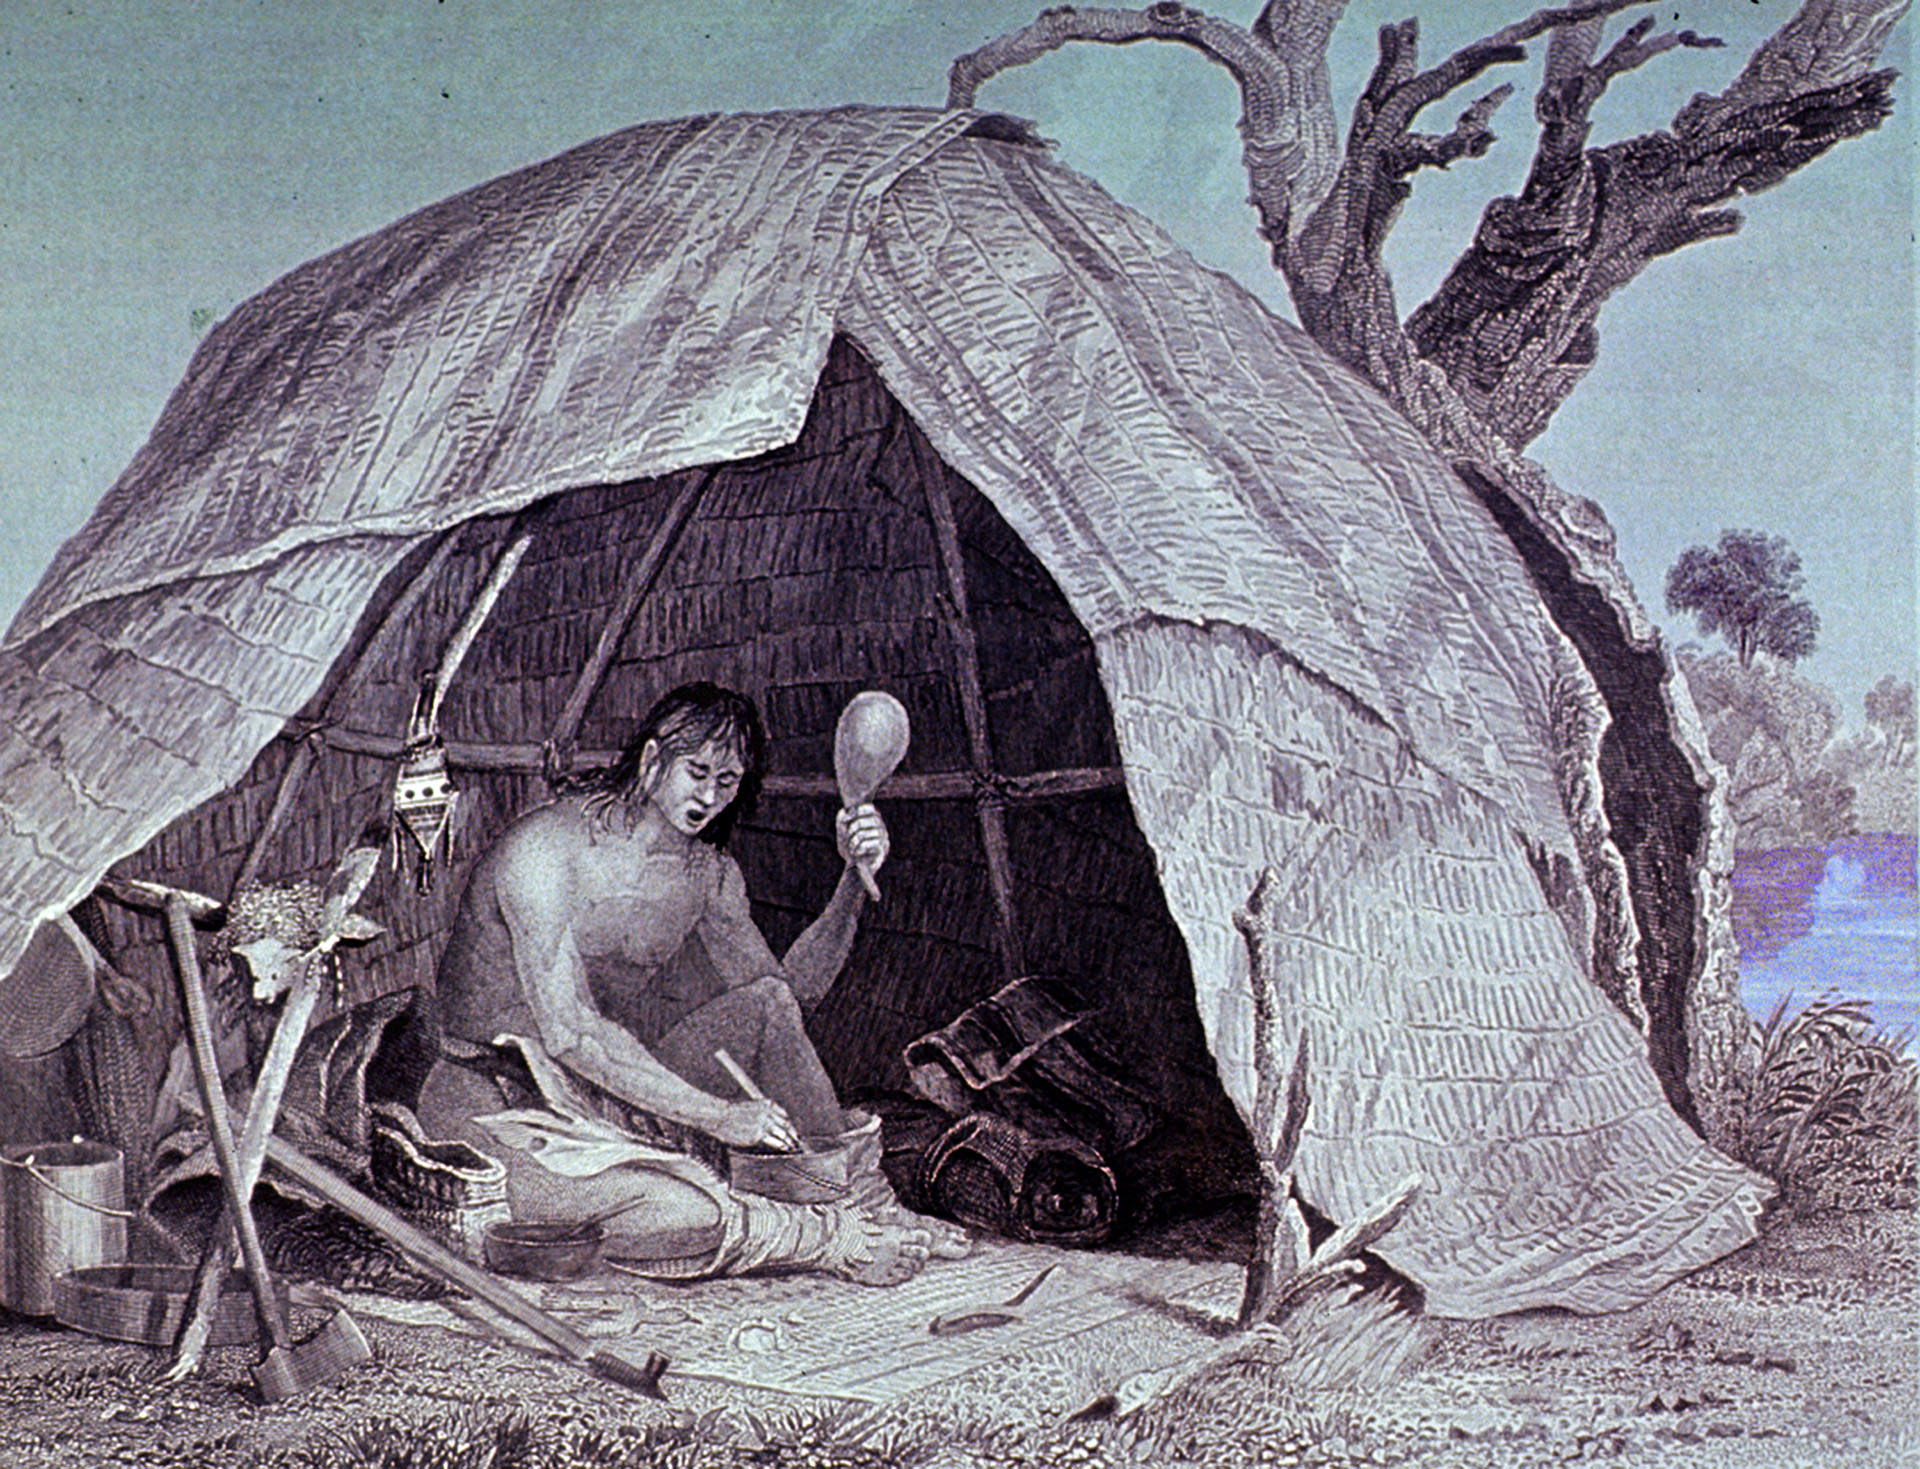 Native American Healing. Sweat lodges, herbal remedies, and shamanic ritual treated the diseases of pre-colonial Los Angeles. Photograph courtesy of U.S. National Library of Medicine Image